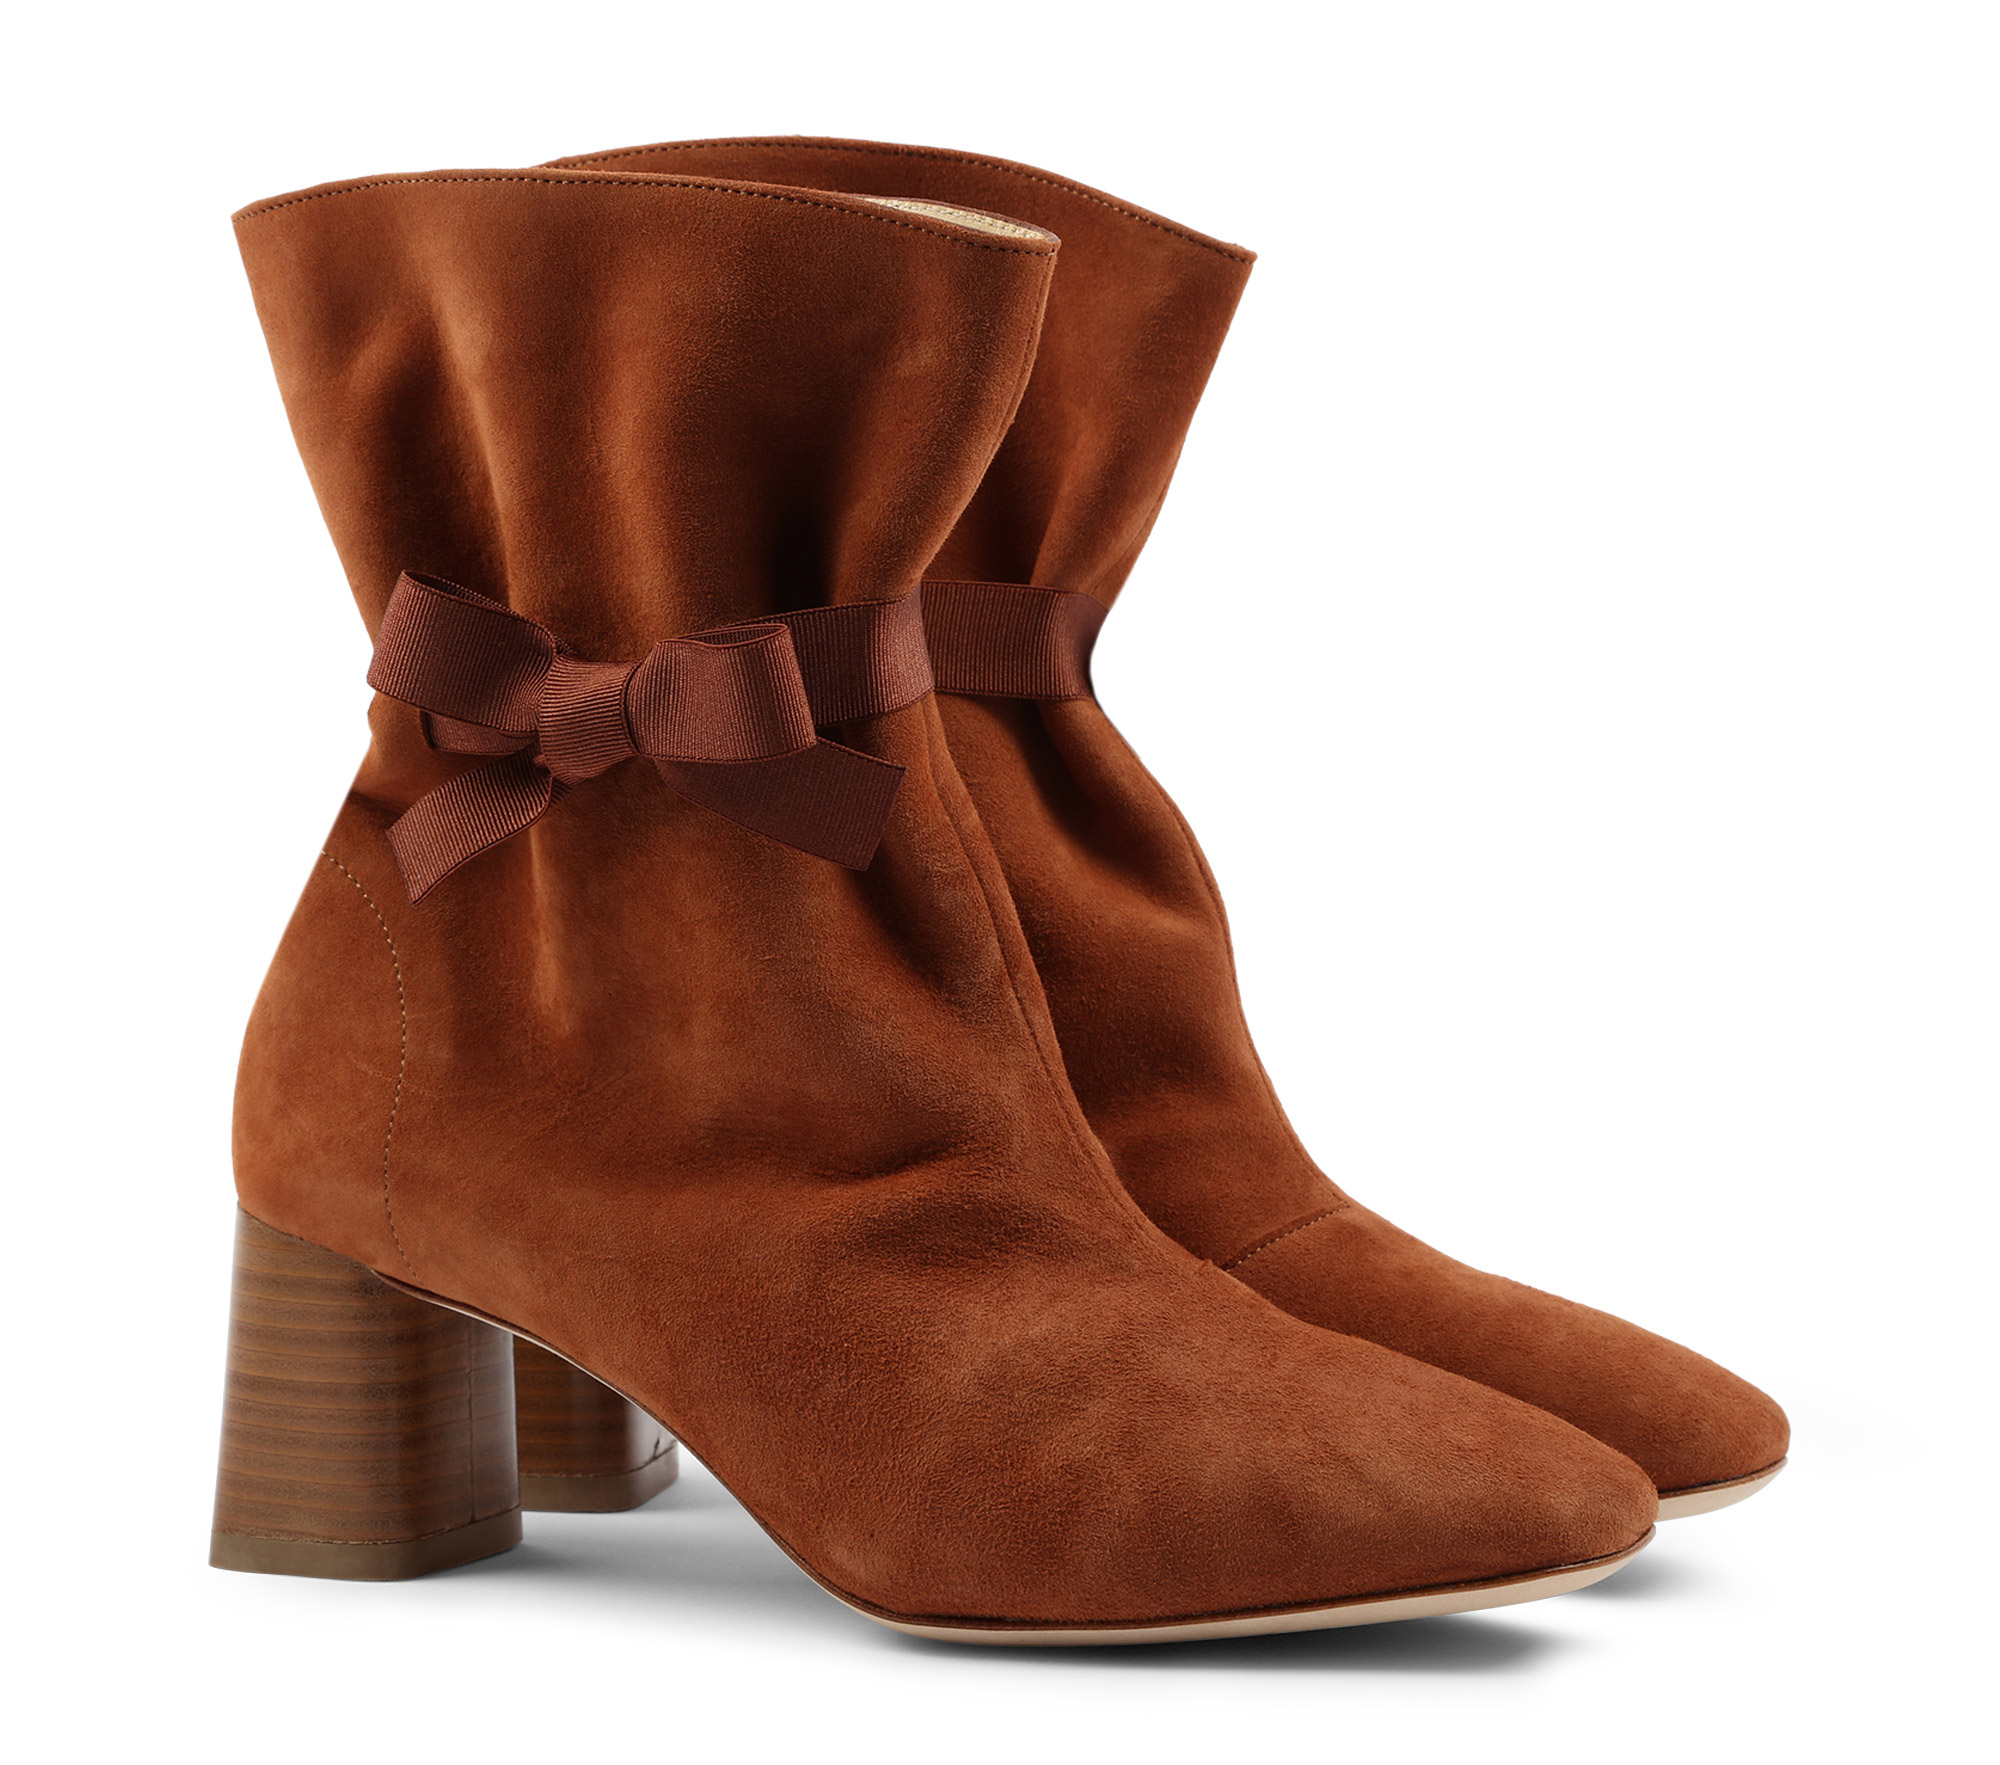 Nelson boots